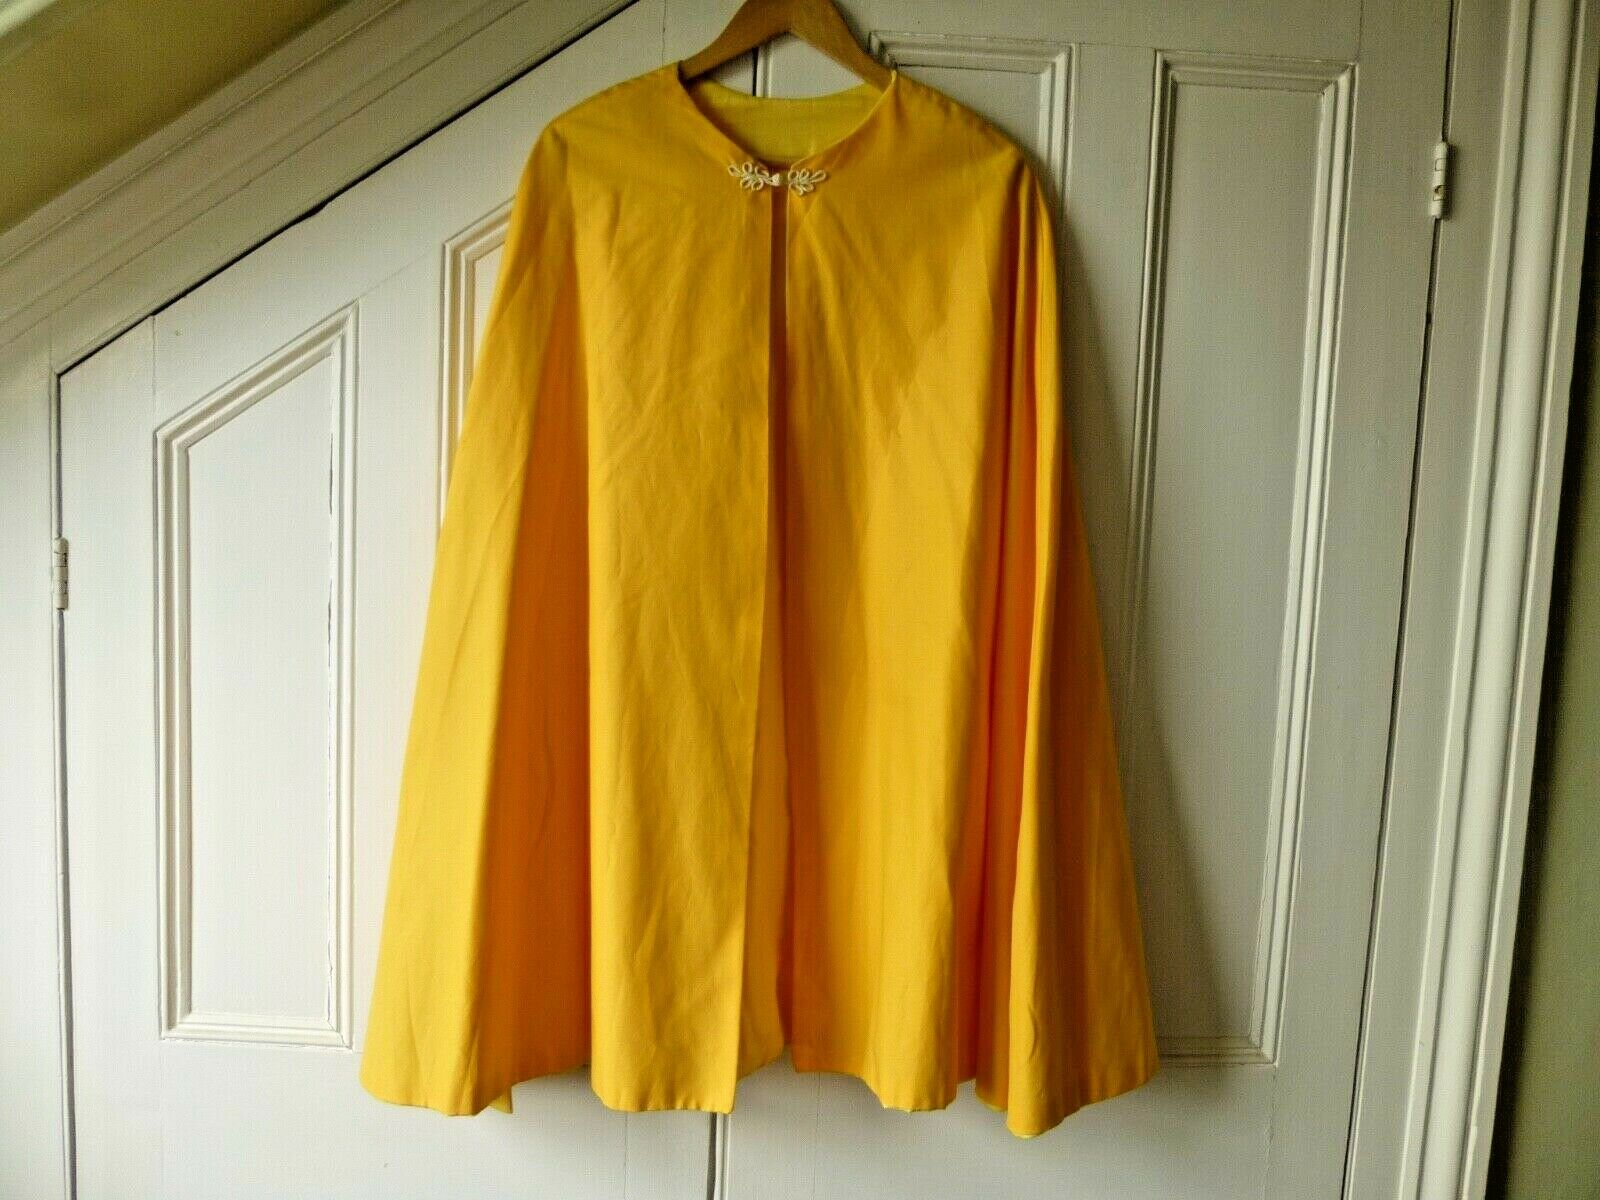 Fancy Dress Bright Yellow/Gold Cape with Decorative 'Frog' Trim Closure